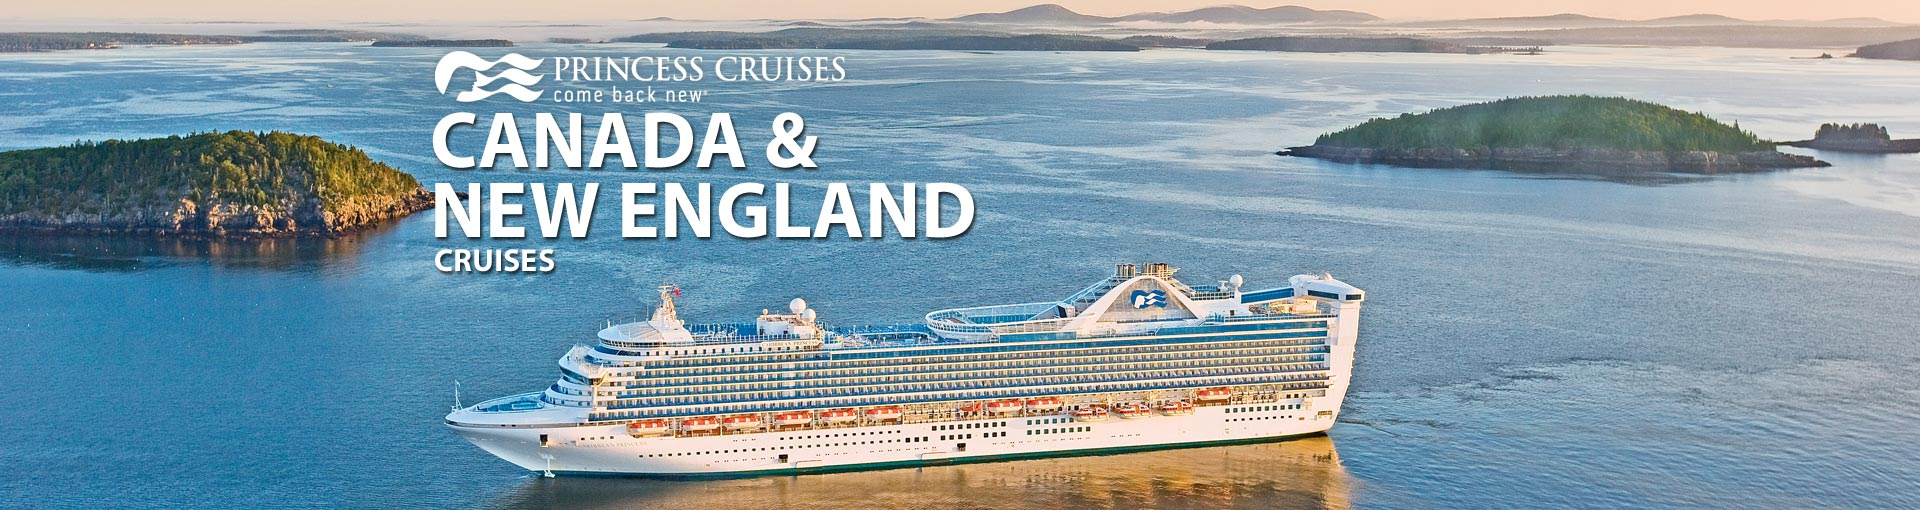 Princess Canada New England Cruises